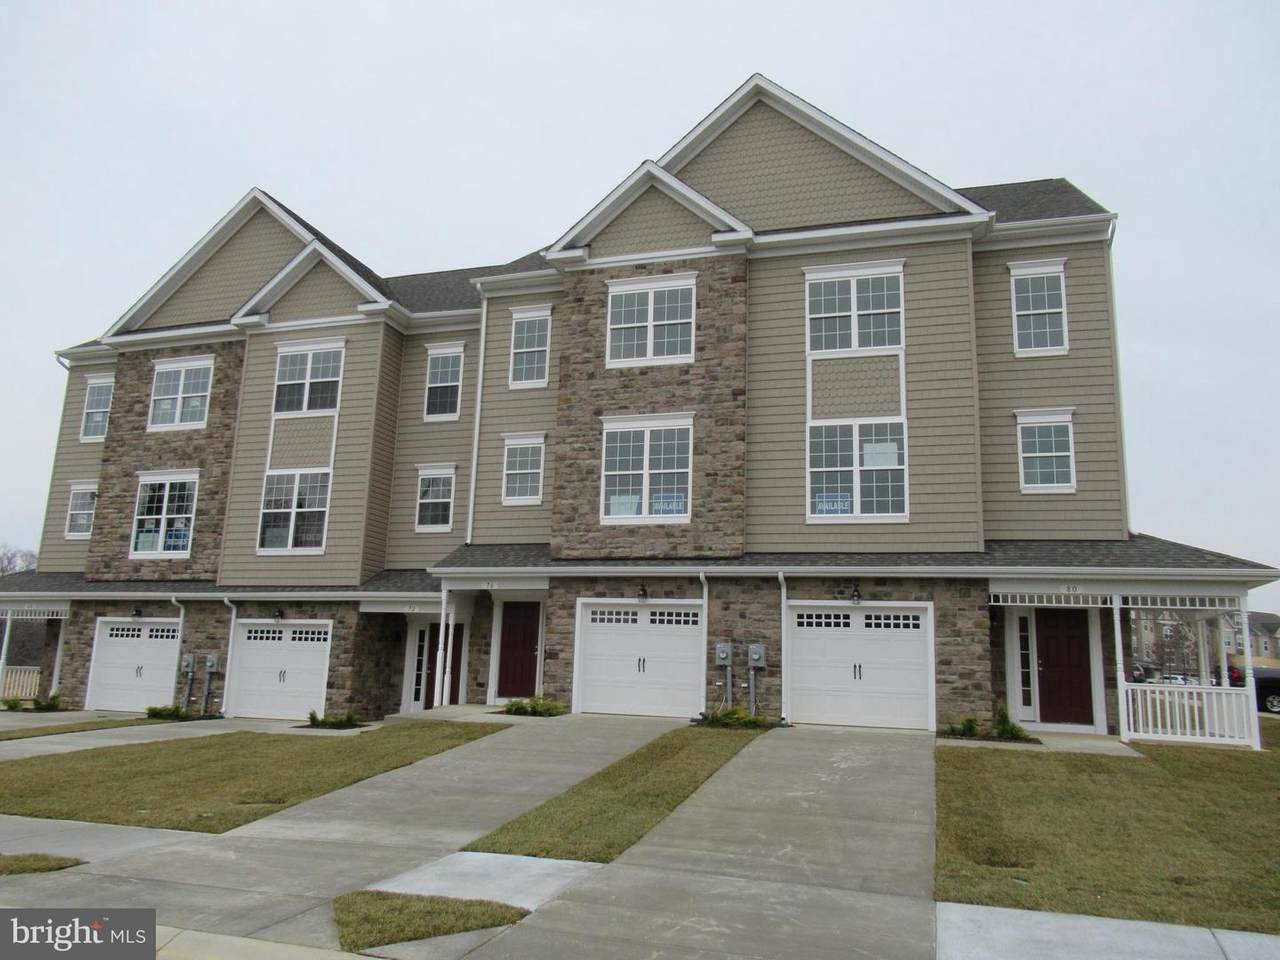 99 Clydesdale Lane - Photo 1